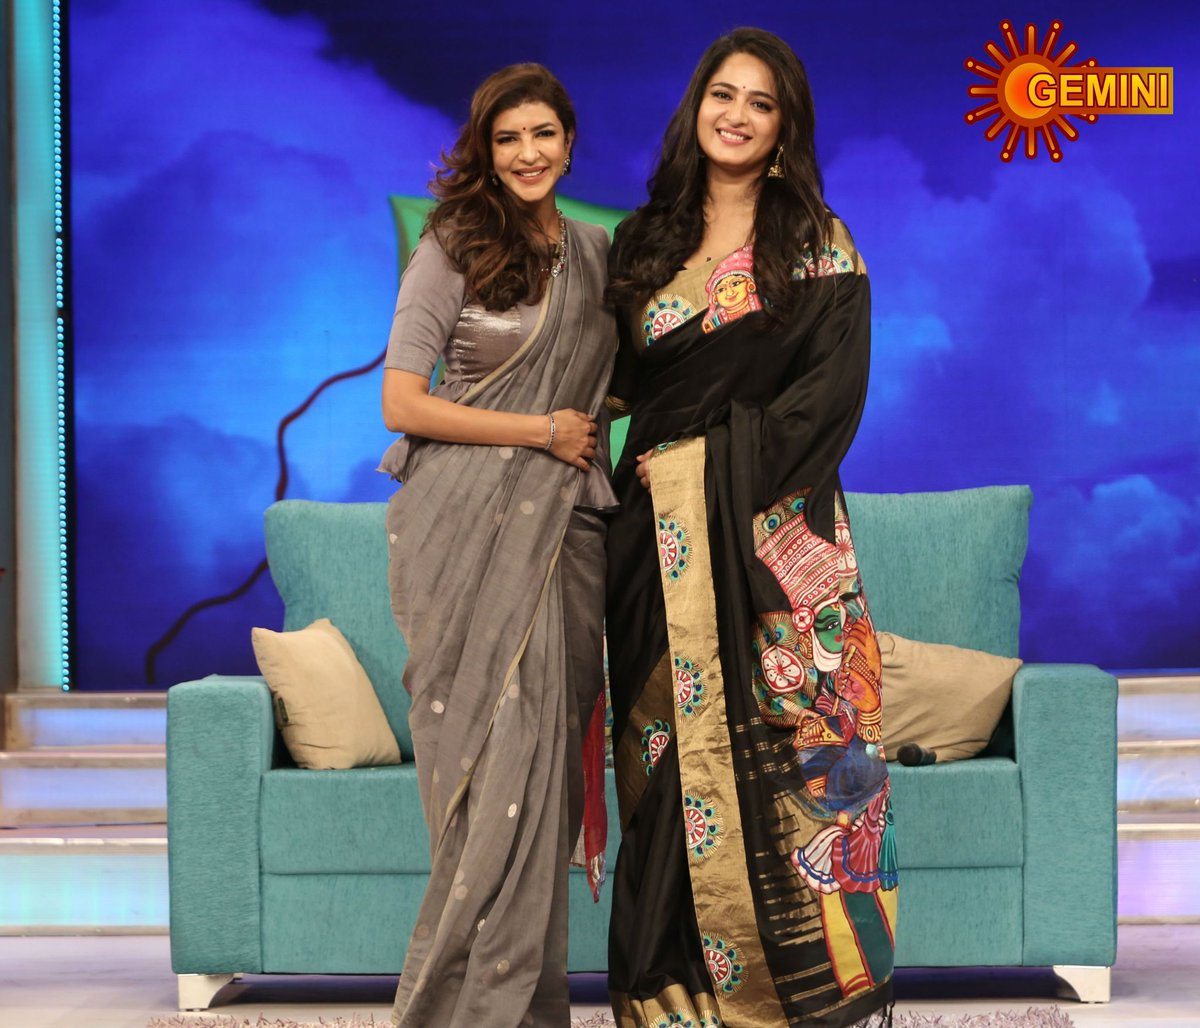 Wishing @LakshmiManchu garu a very happy birthday birthday and a great year ahead on behalf of all #AnushkaShettys fans! Youre beautiful inside and out. 😍💕 #HBDLakshmiManchu